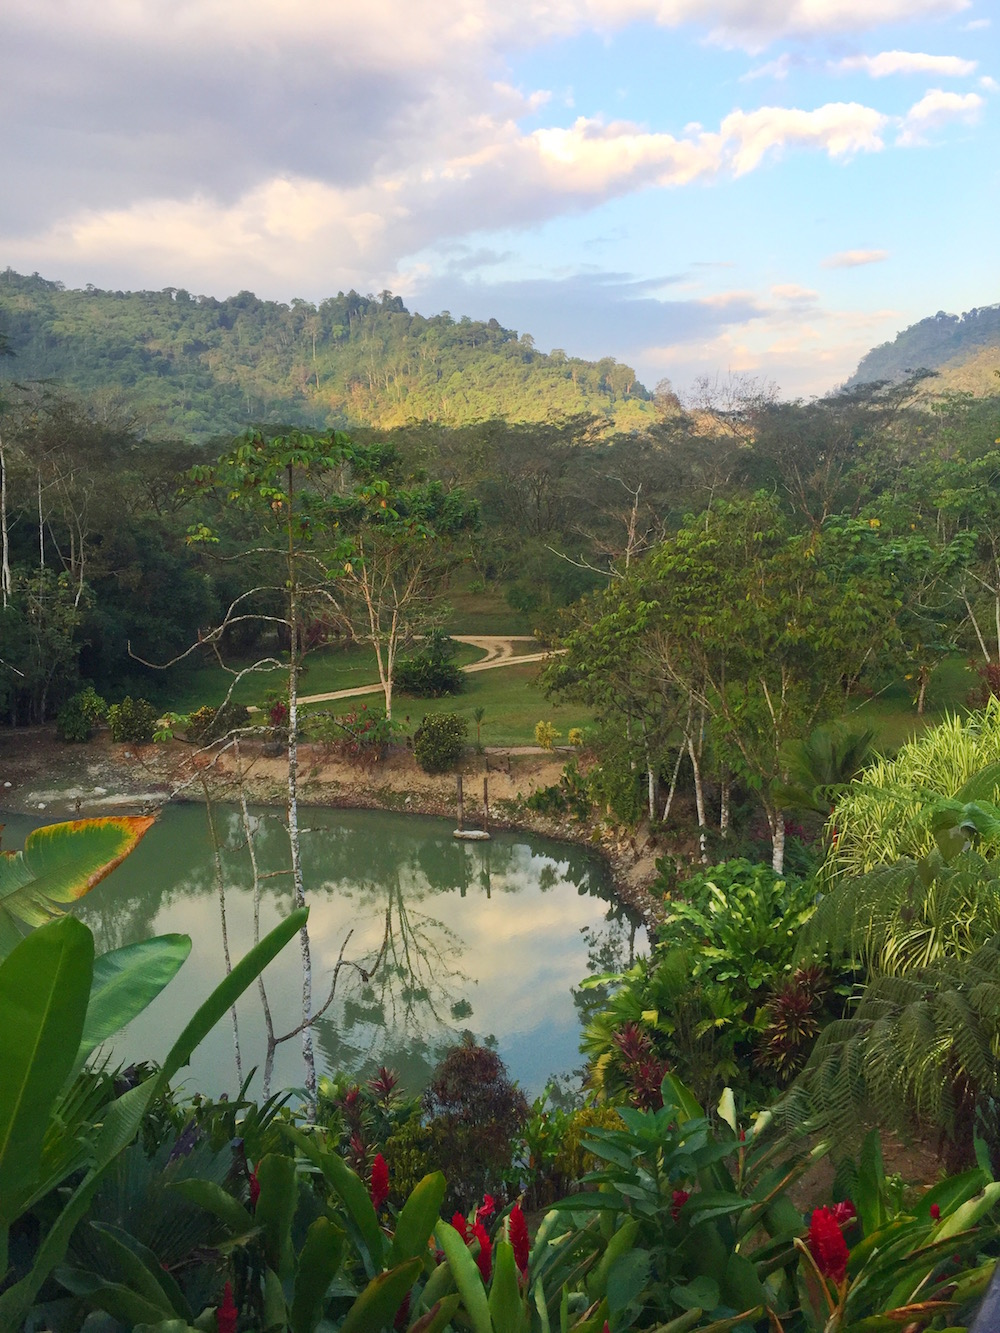 View from the Lodge at Rafiki Safari Lodge Costa Rica